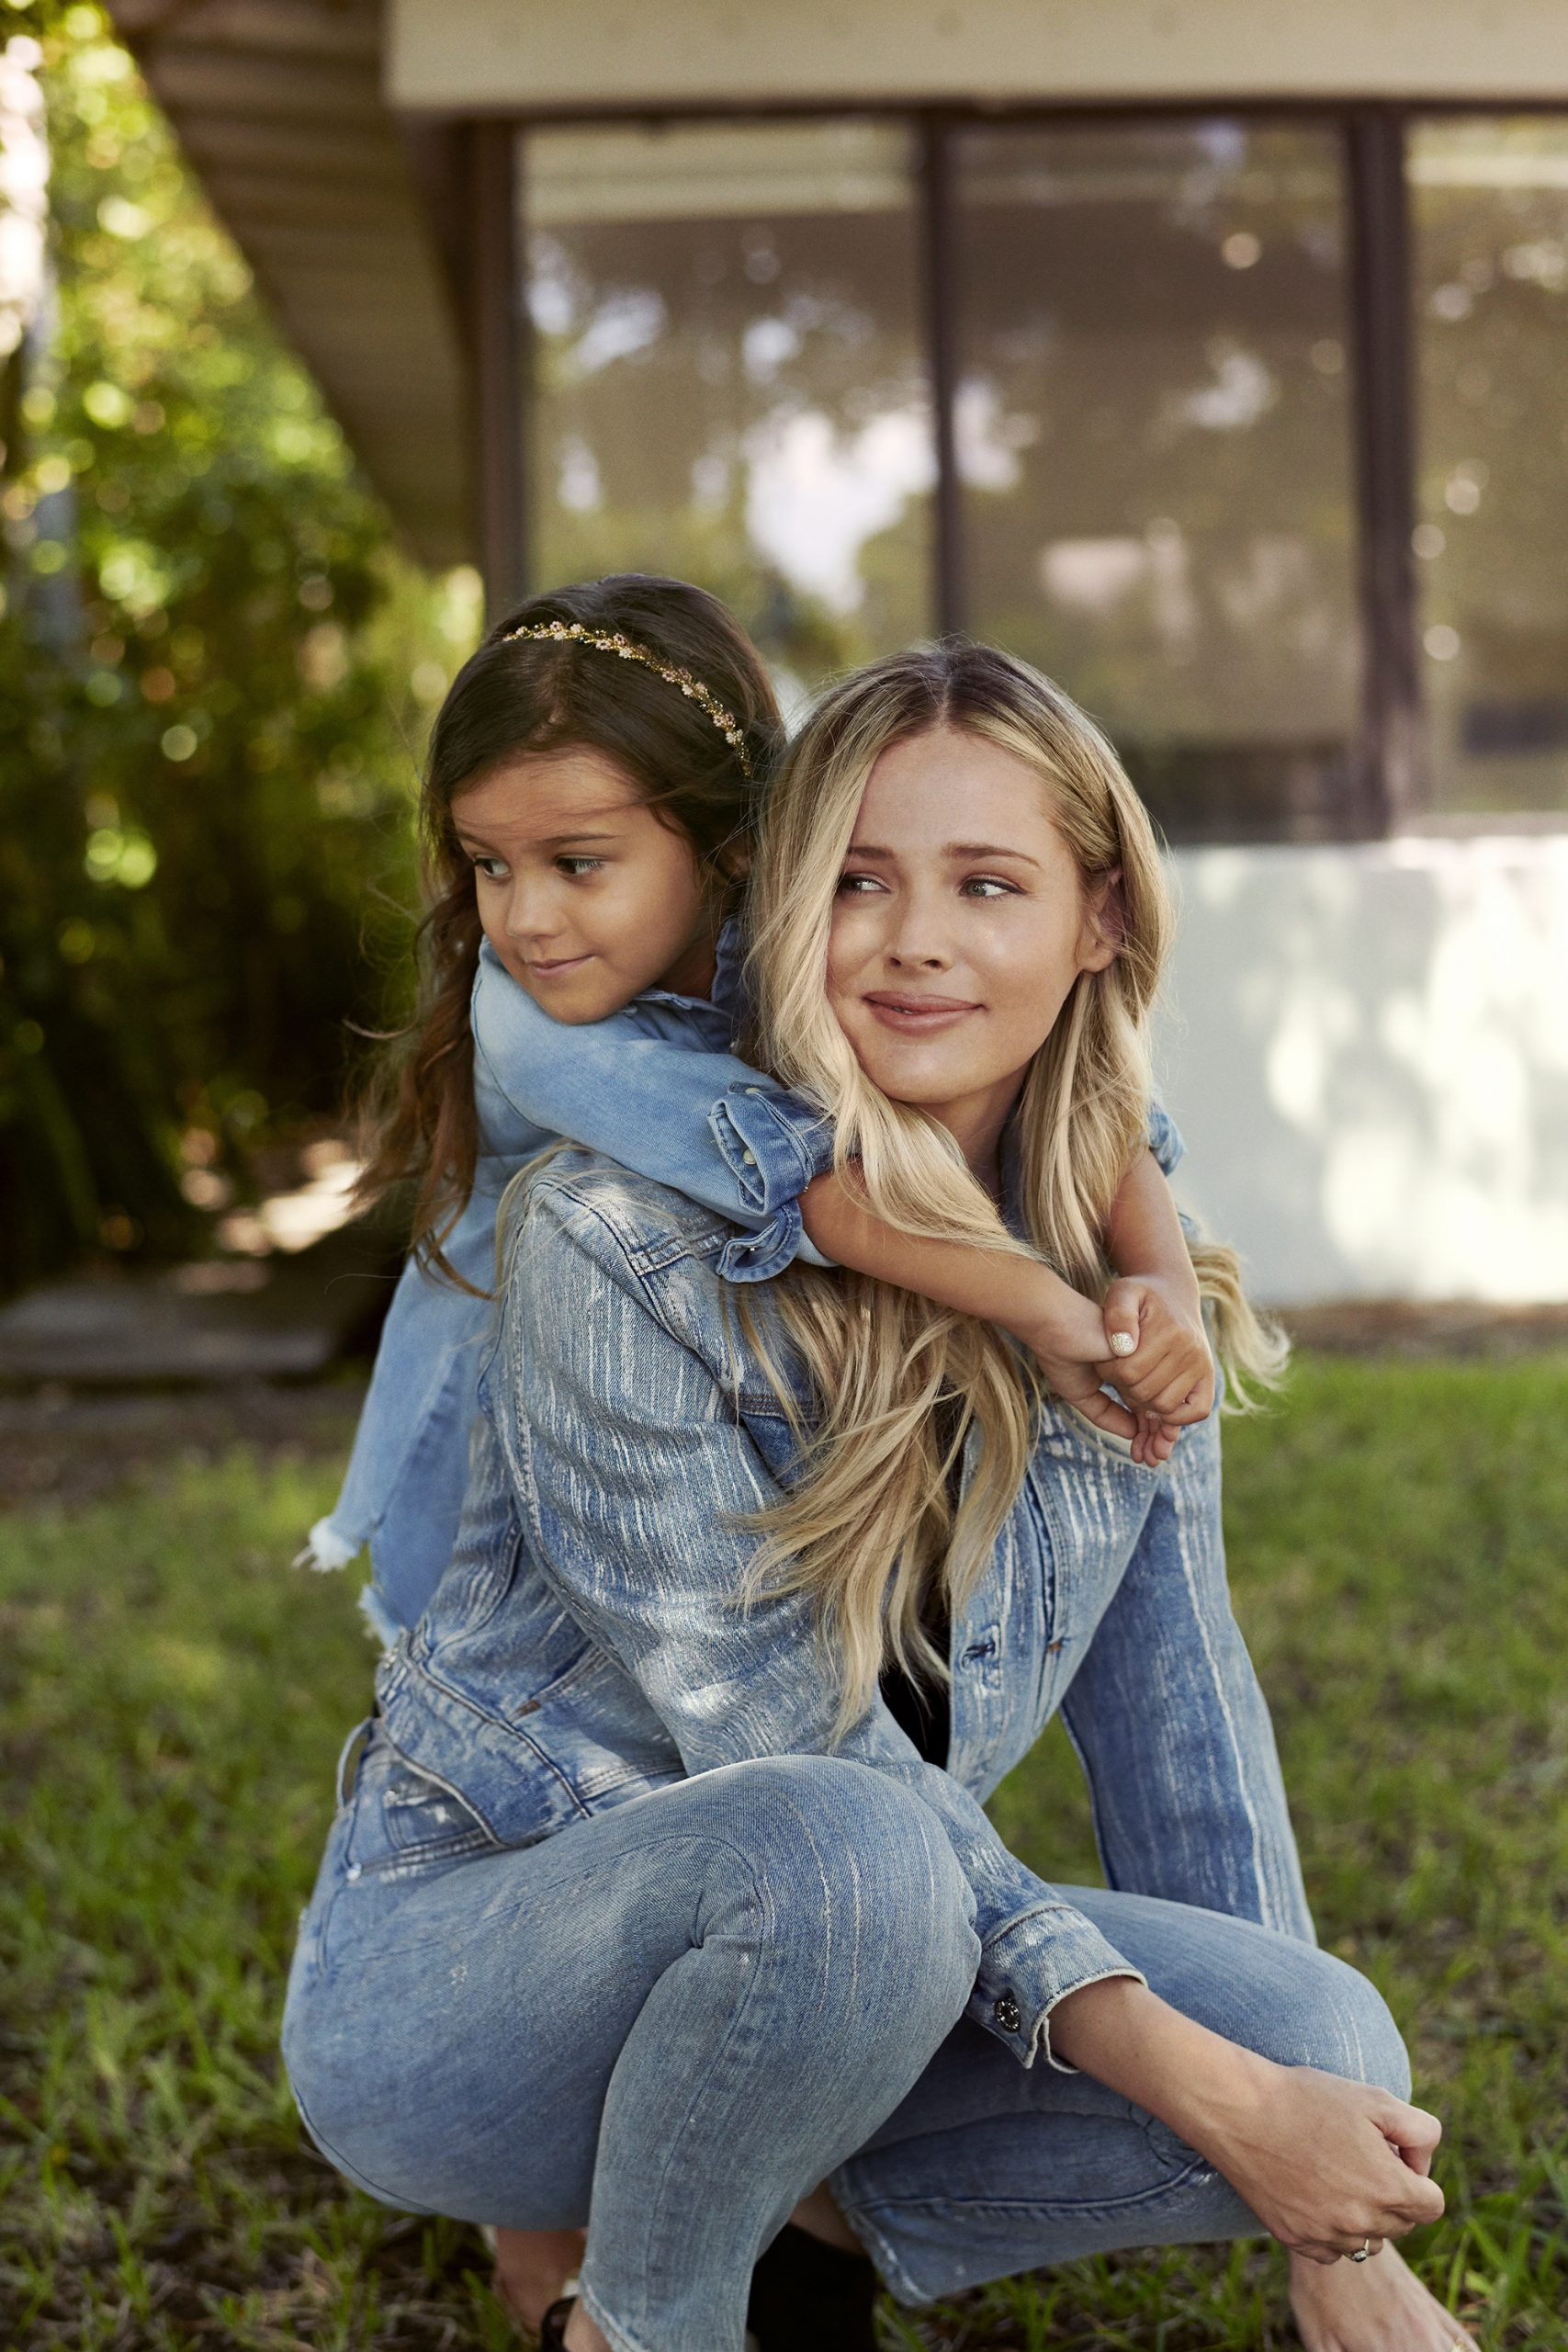 Seven For All Mankind Holiday 2020 Ad Campaign Film & Photos